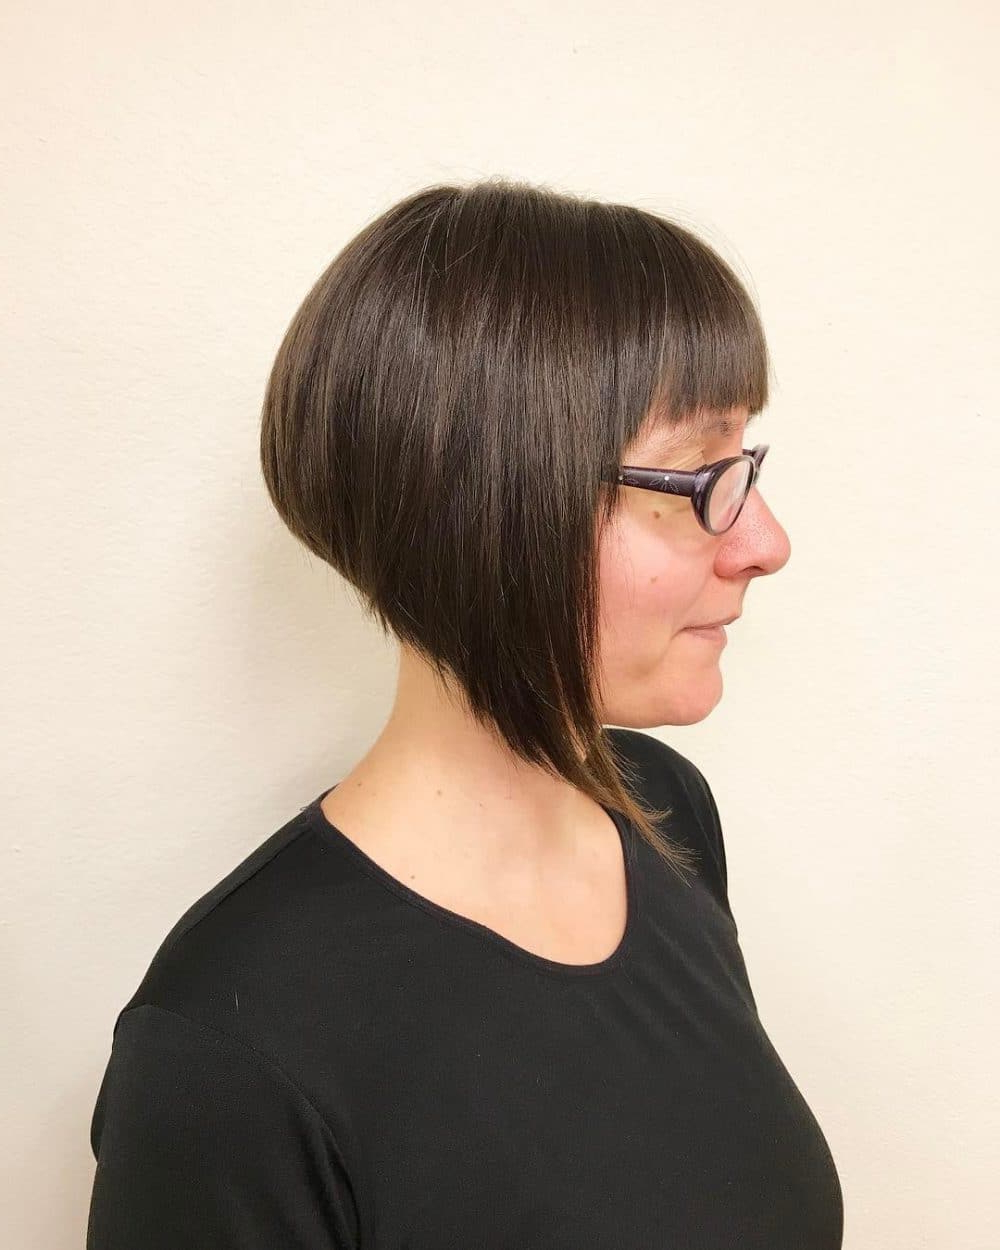 33 Hottest A Line Bob Haircuts You'll Want To Try In 2019 Intended For A Line Bob Hairstyles With Arched Bangs (View 18 of 20)